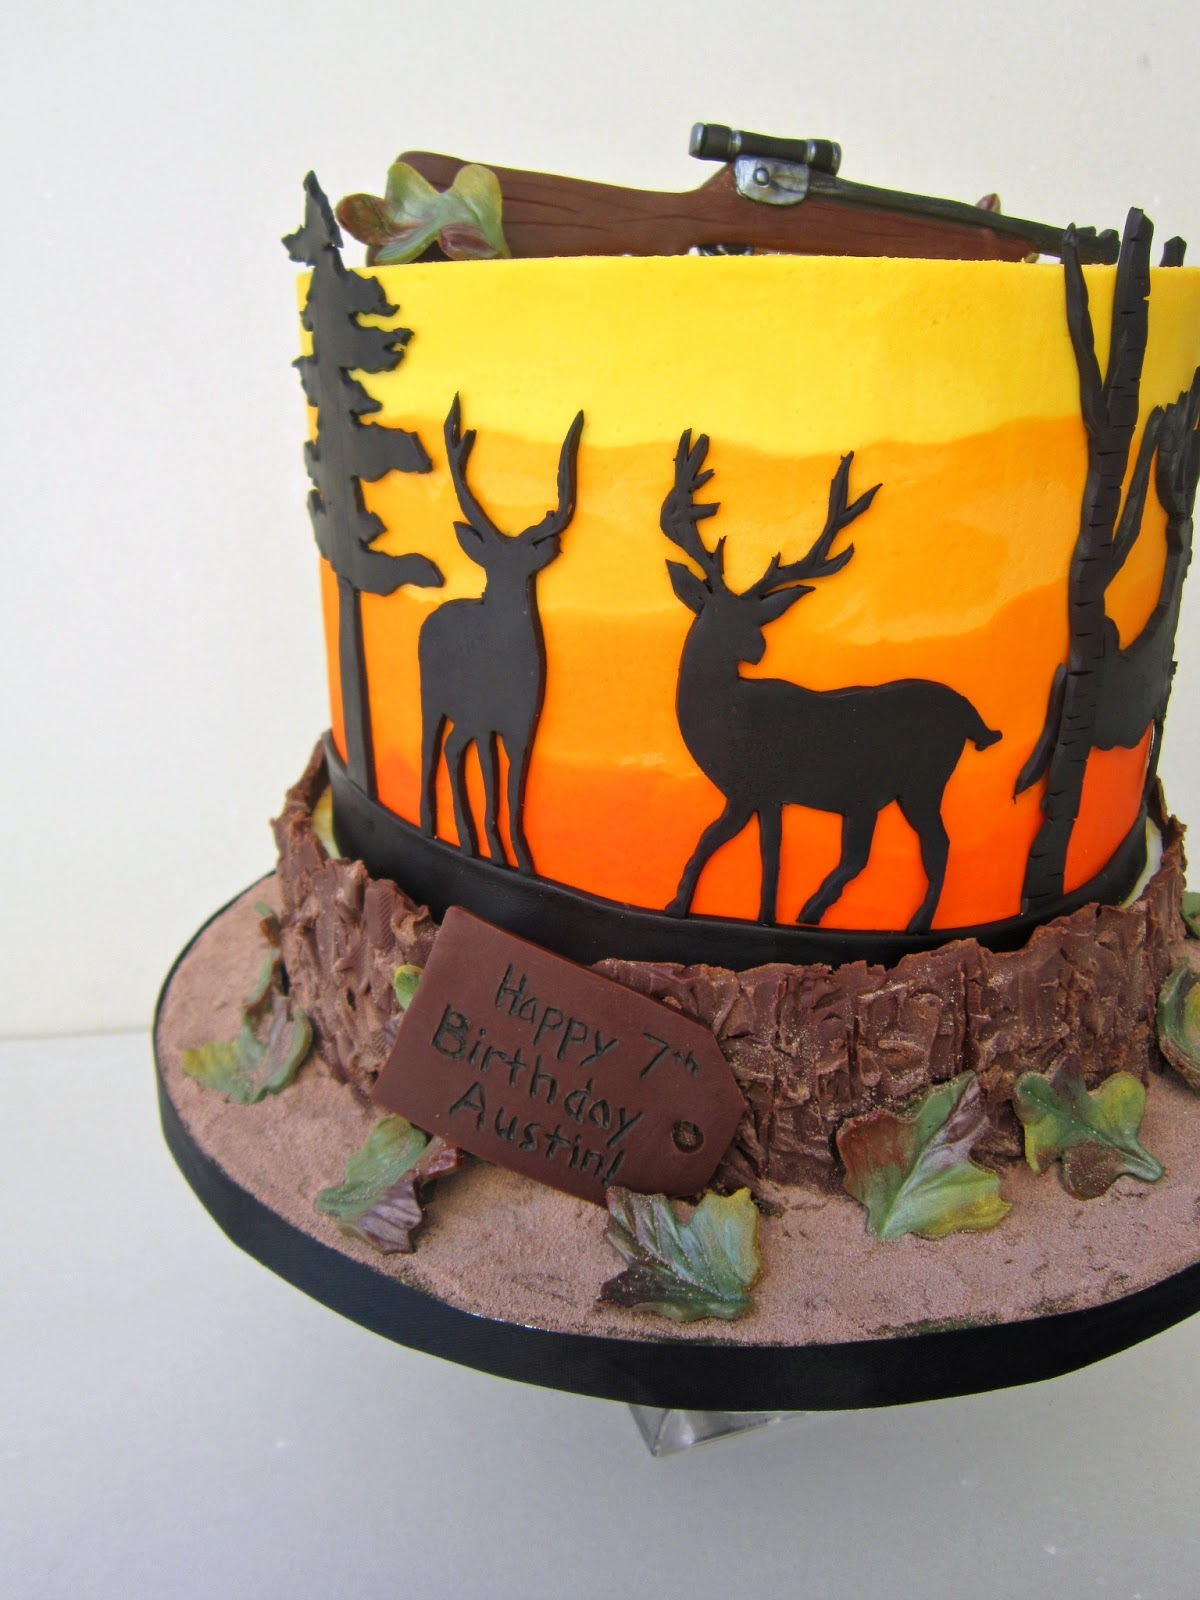 Pleasant 6 Hunting Birthday Cakes For Her Photo Deer Hunting Happy Birthday Cards Printable Inklcafe Filternl